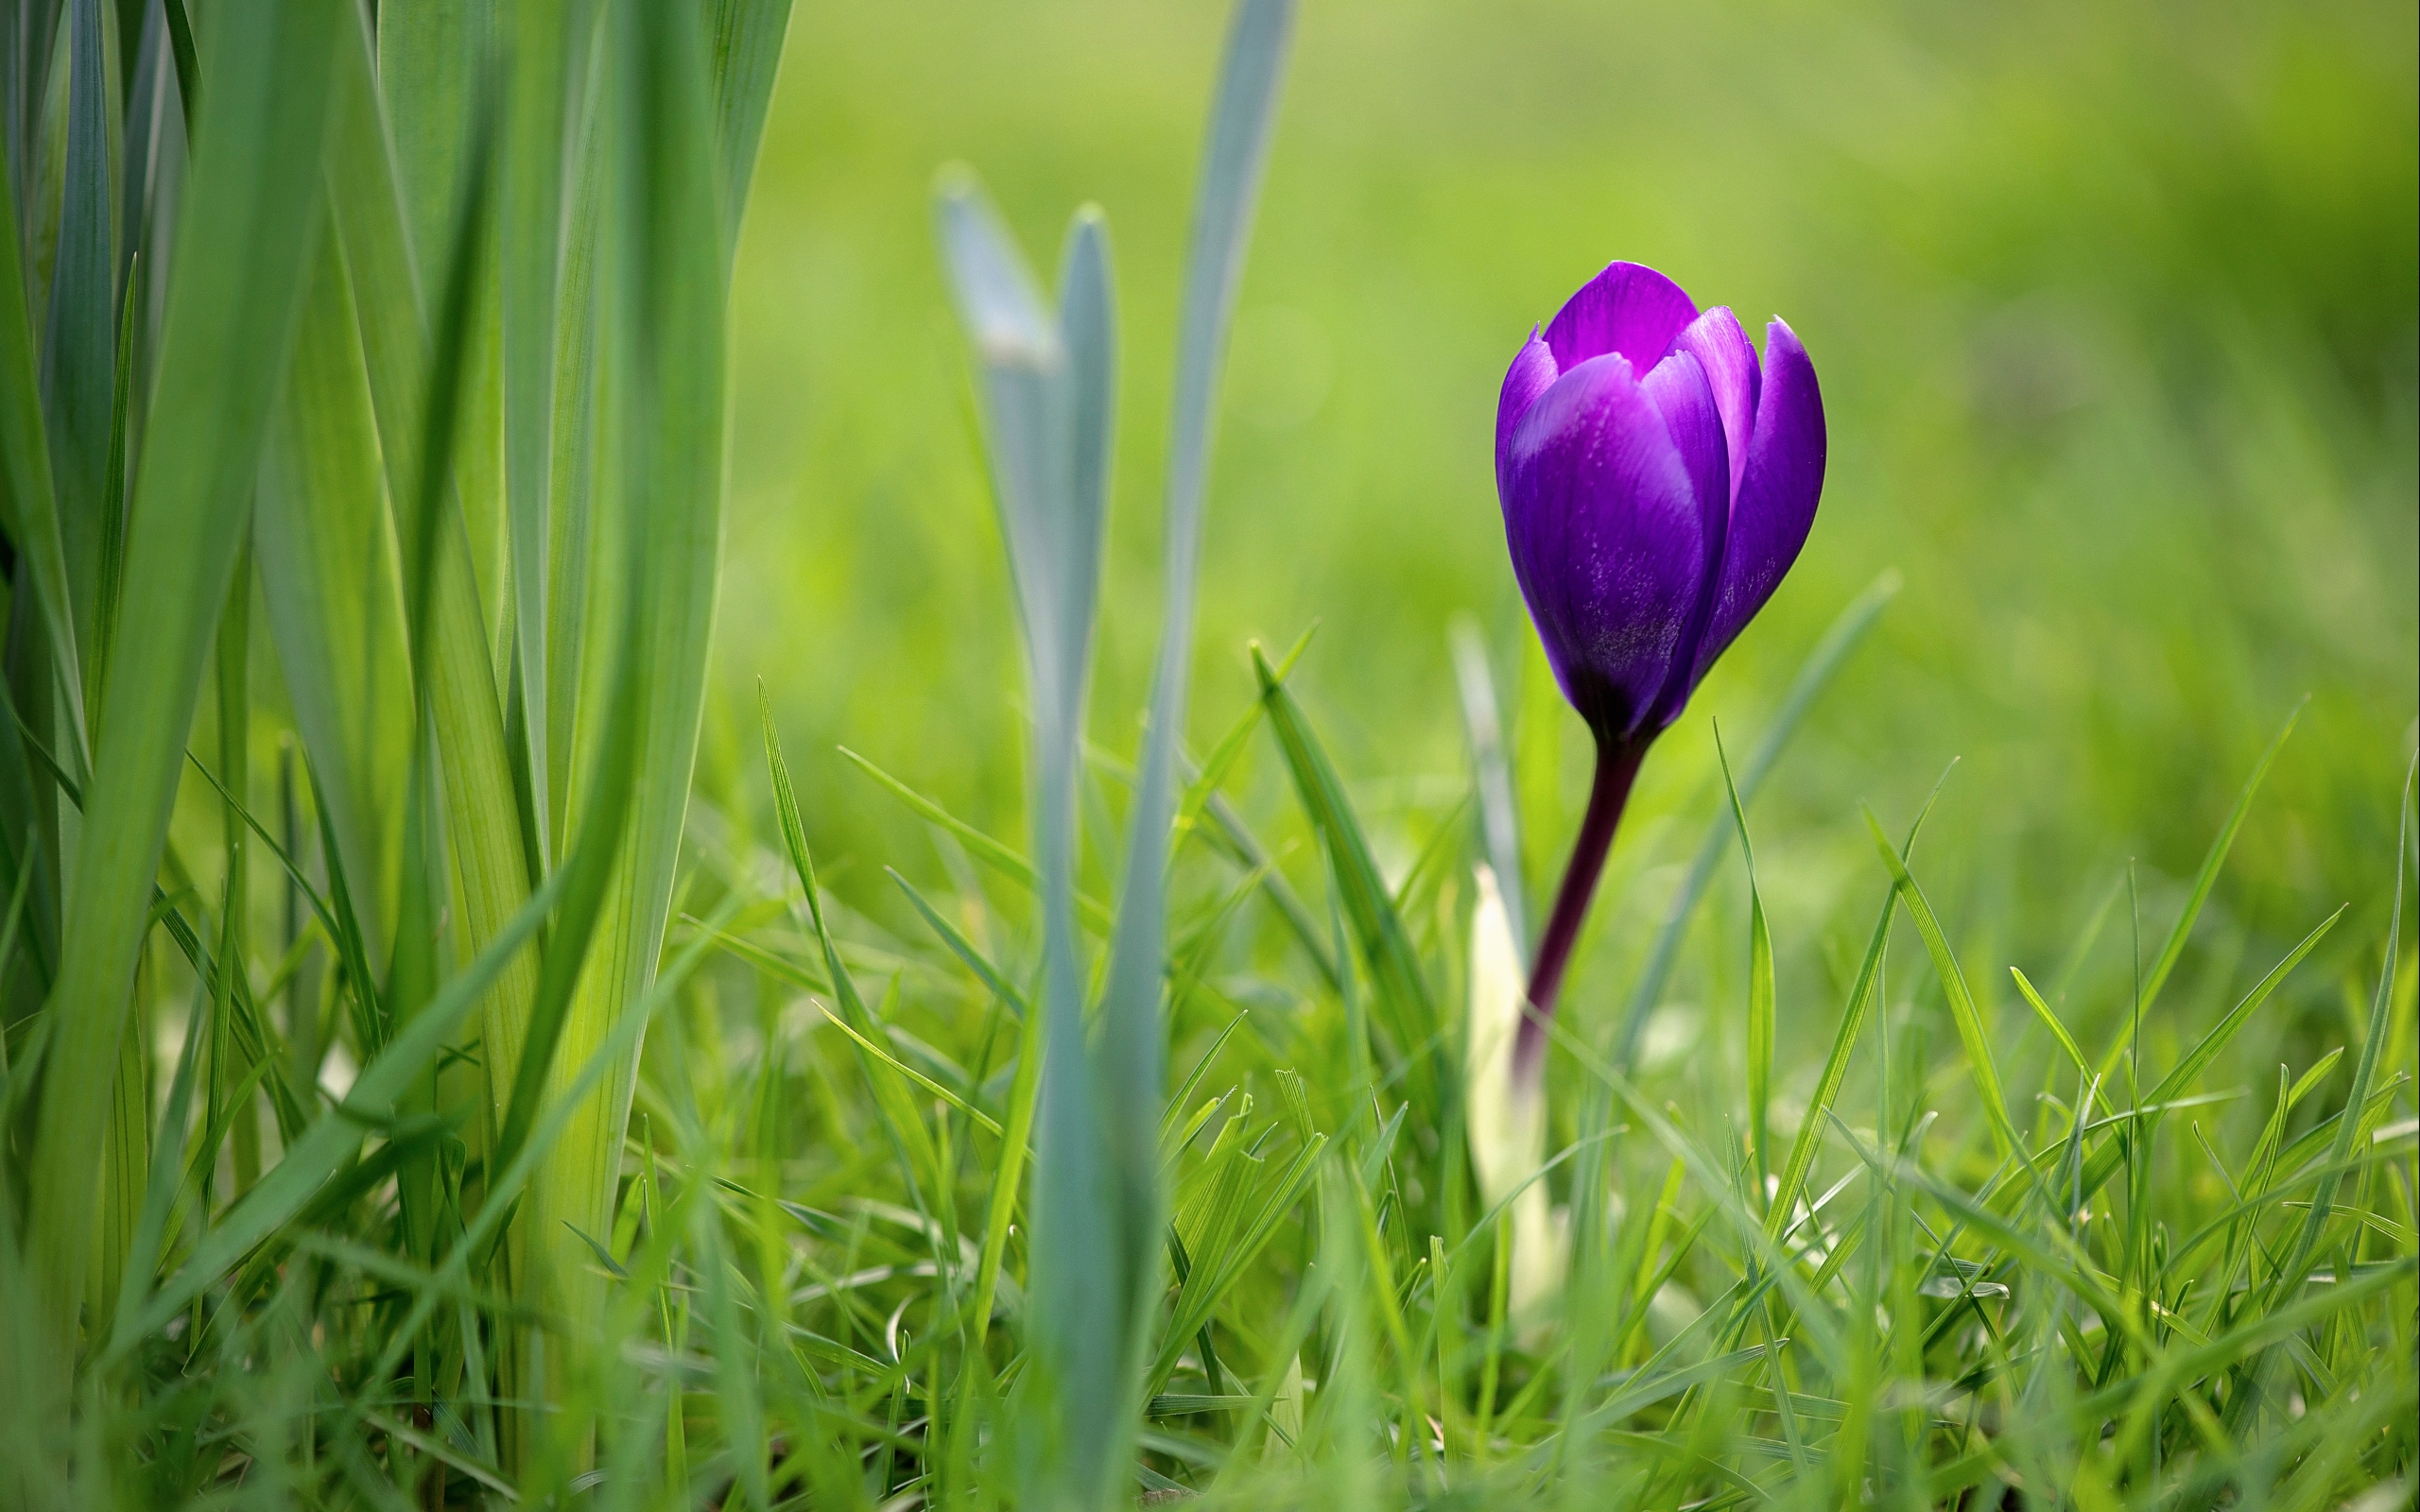 Hd Wallpapers Images: Crocus Wallpapers, Pictures, Images